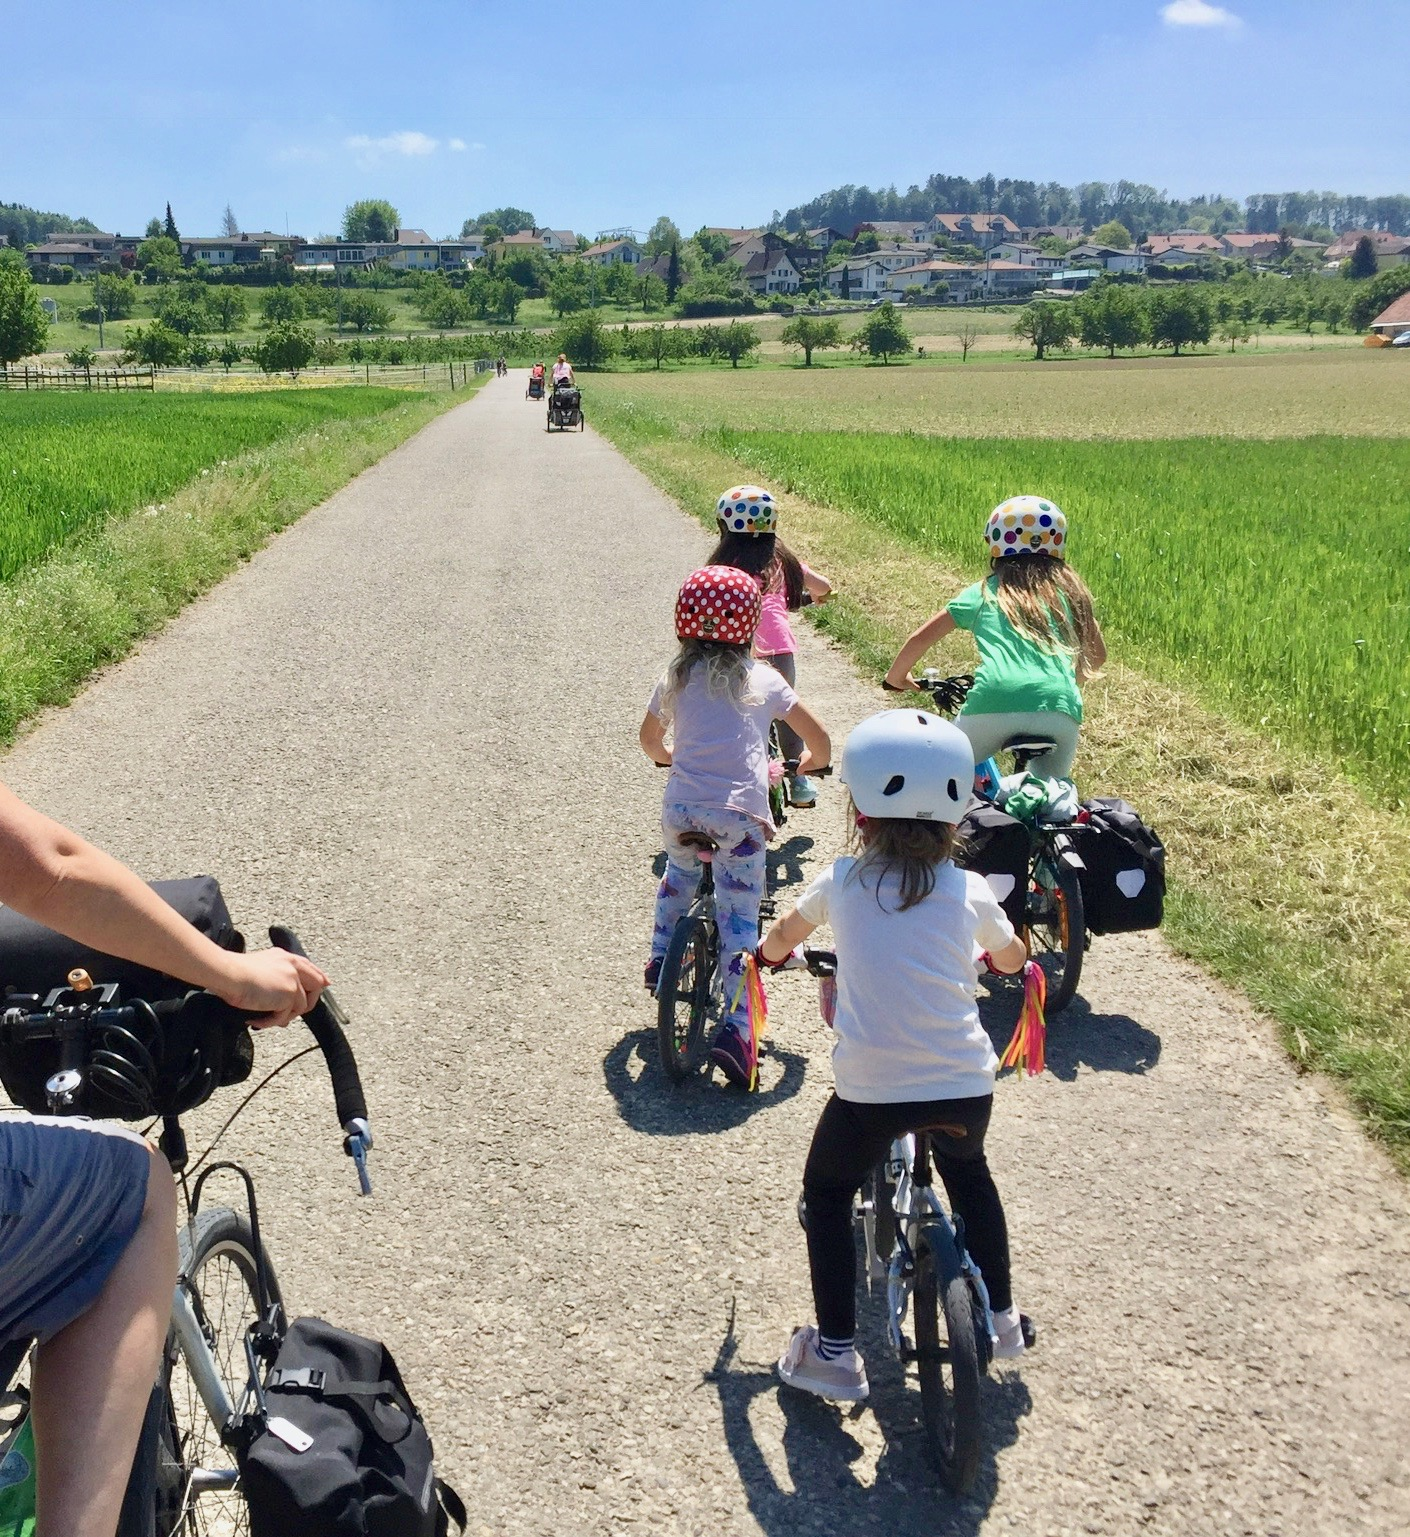 Family holidays by bike